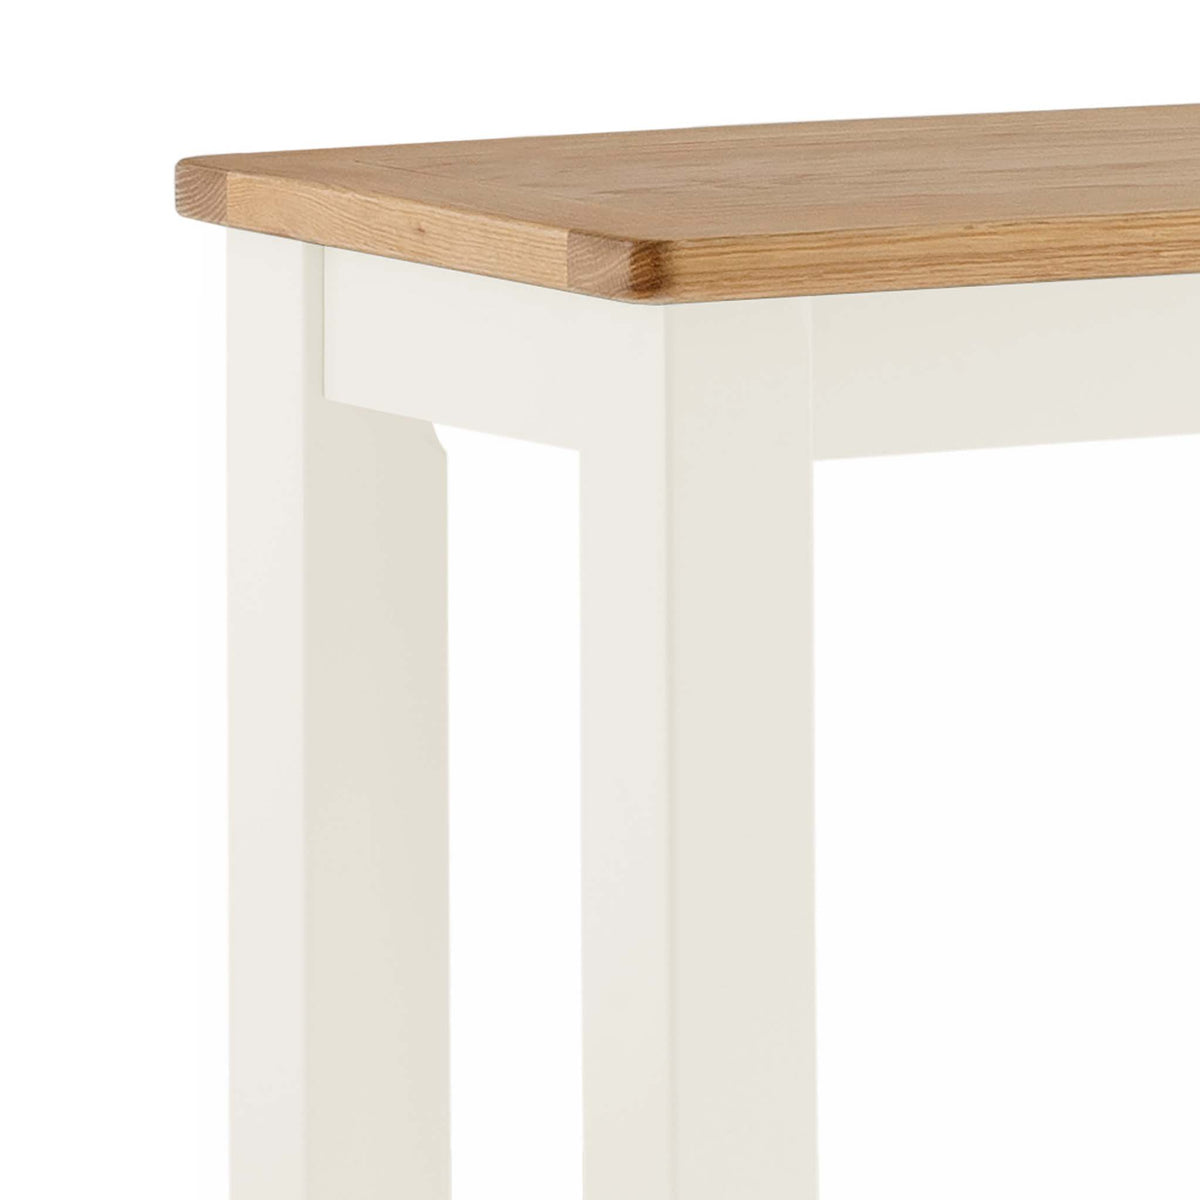 The Padstow White Wooden Breakfast Bar - Close Up of Oak Top